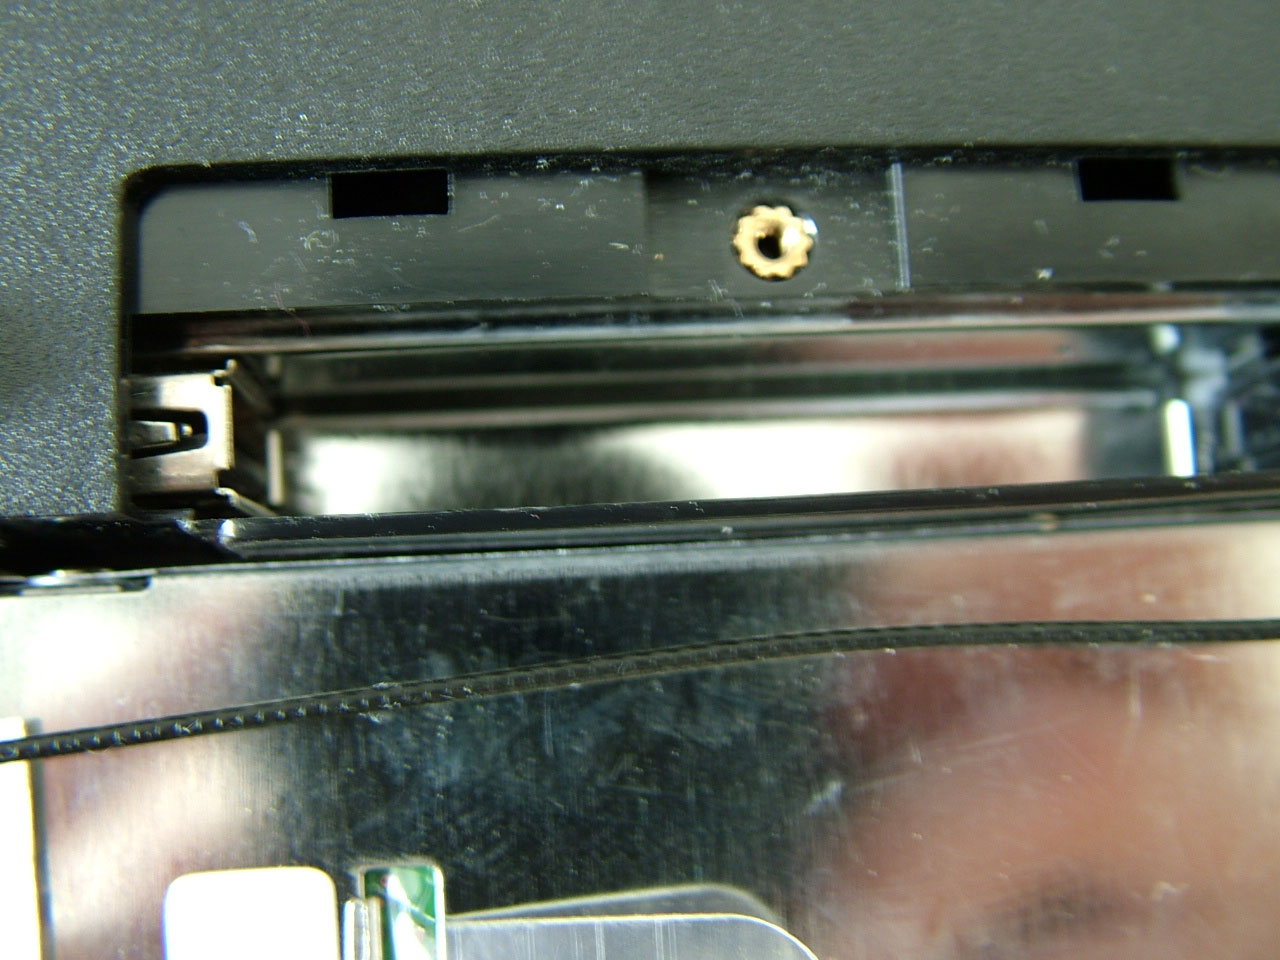 internal-usb-slot.jpg